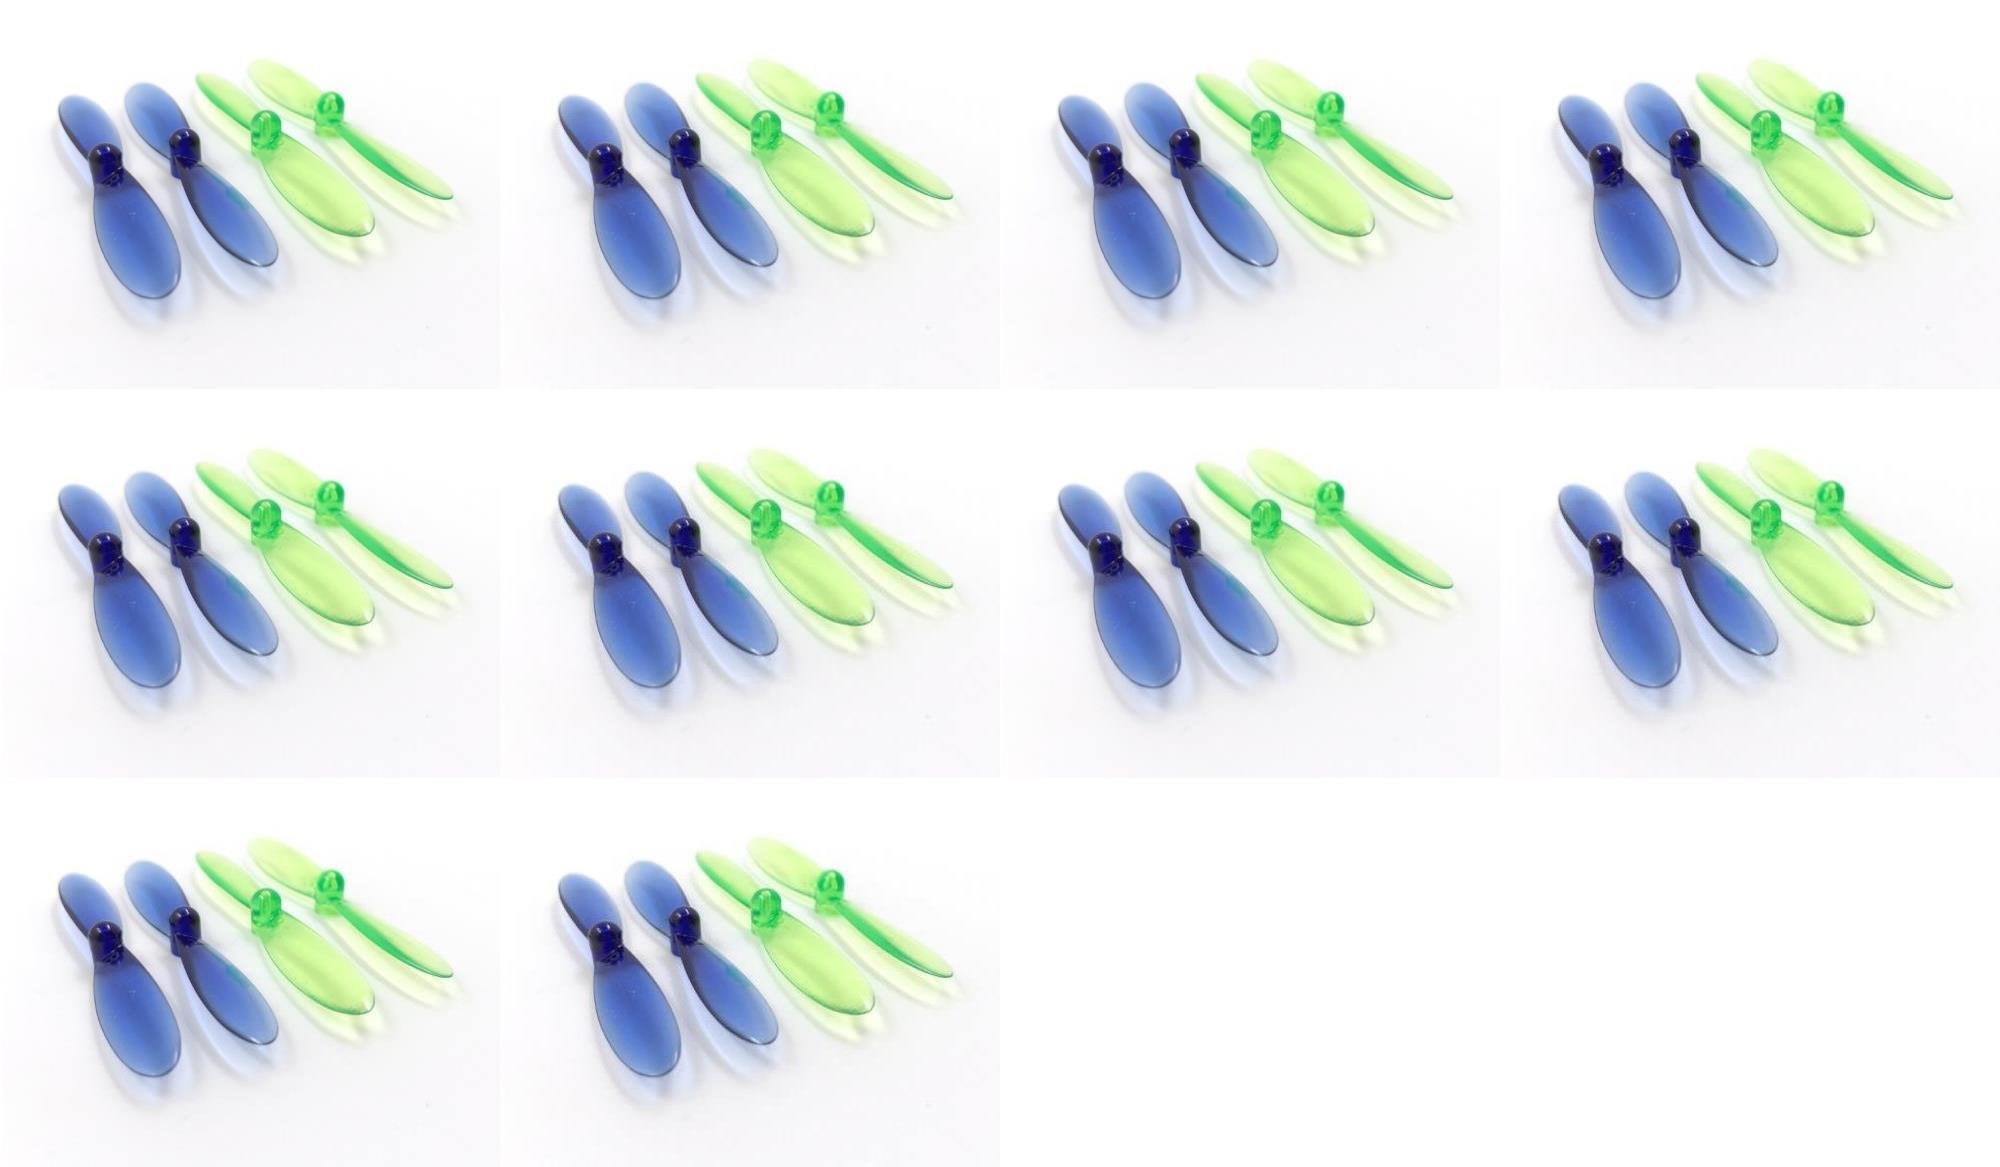 10 x Quantity of Attop YD-713 Transparent Clear Blue and Green Propeller Blades Props Rotor Set 55mm Factory Units 2